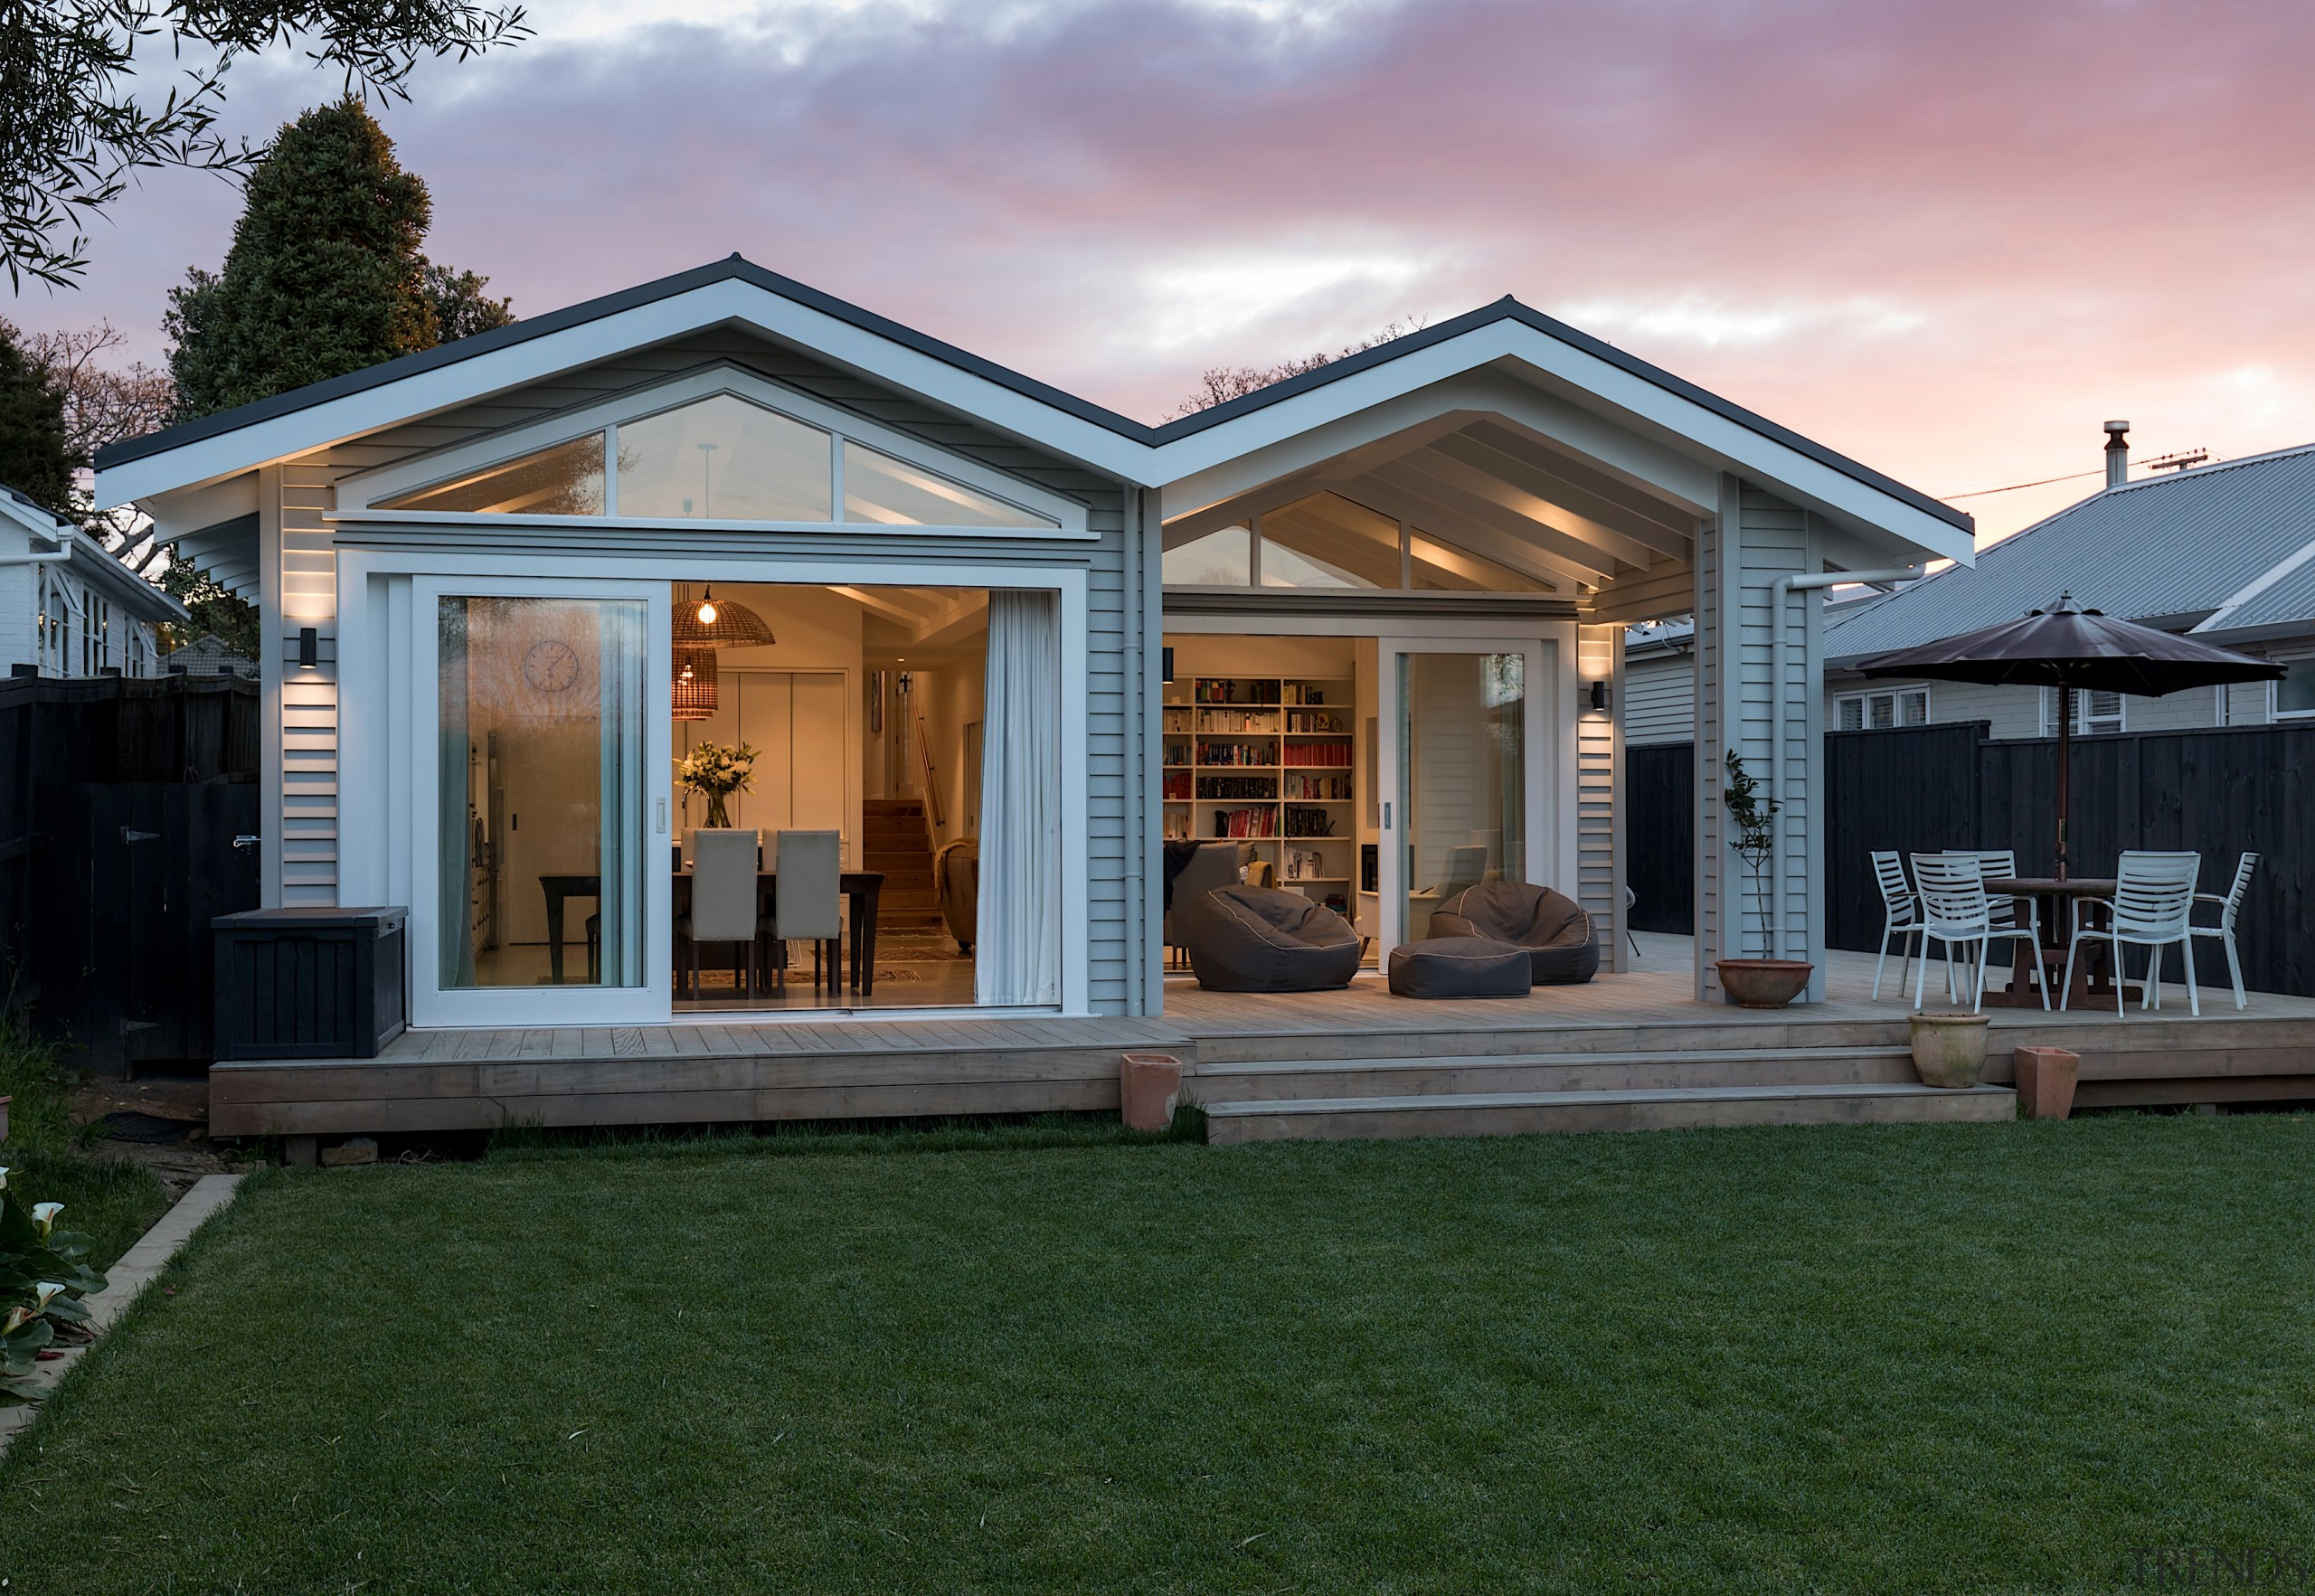 With options! This transformative renovation by Michael Cooper